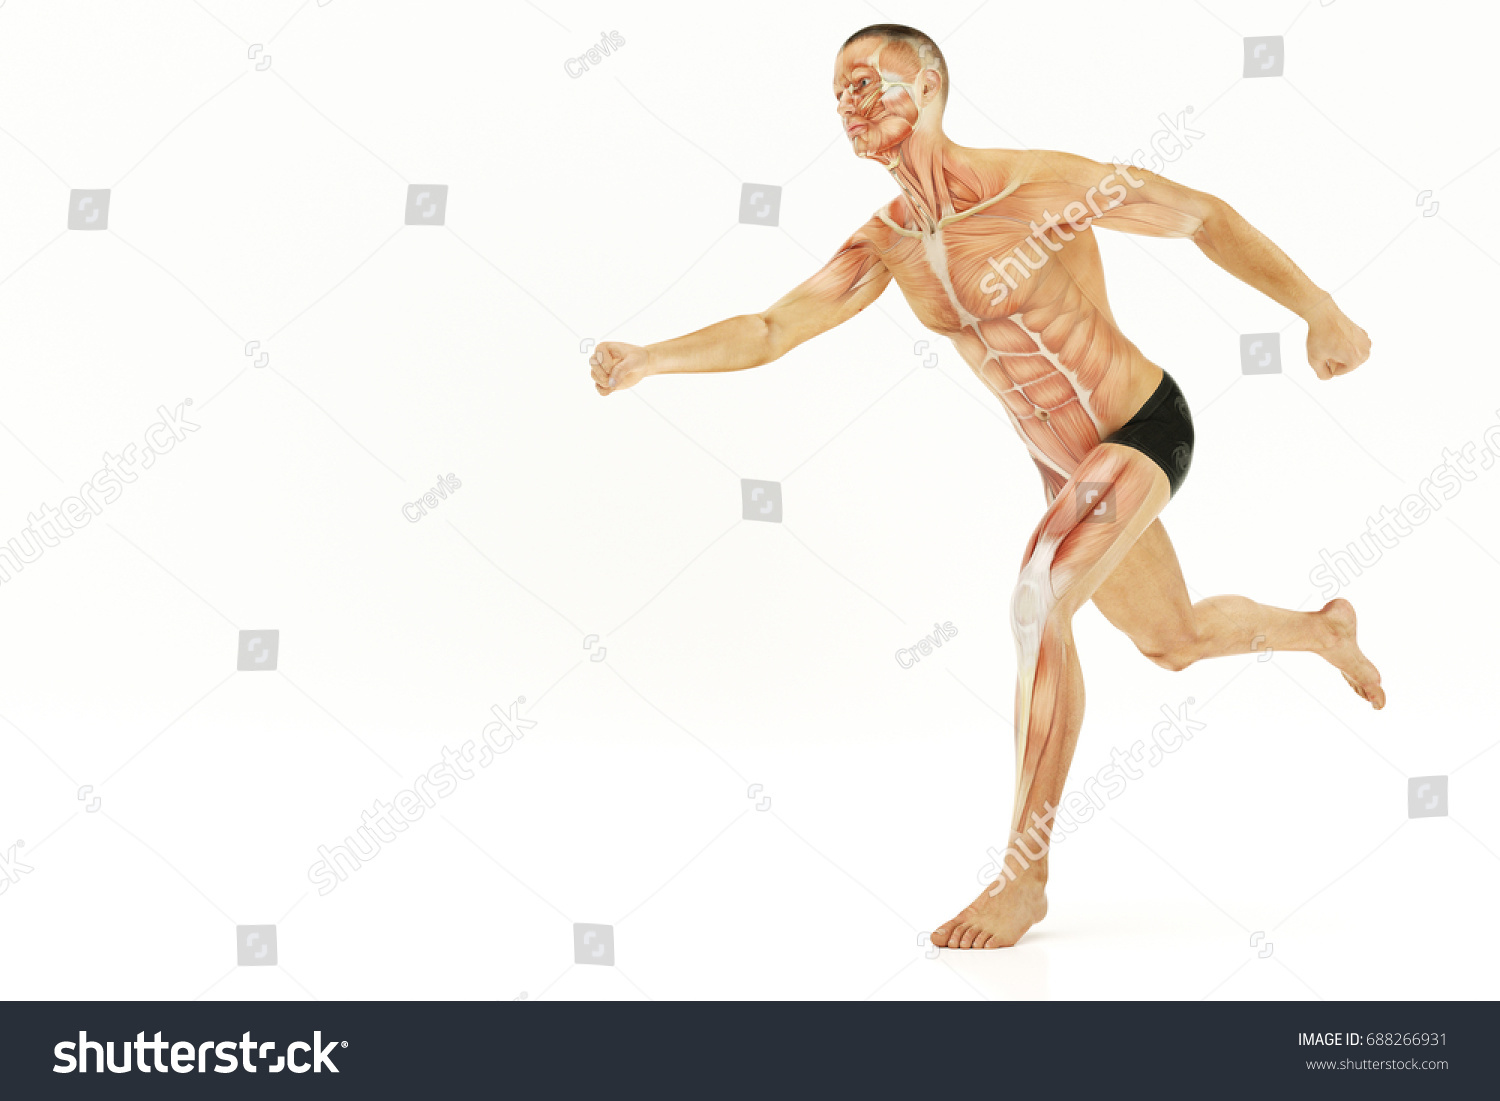 Anatomy Running Human Body Muscles 3 D Stock Illustration 688266931